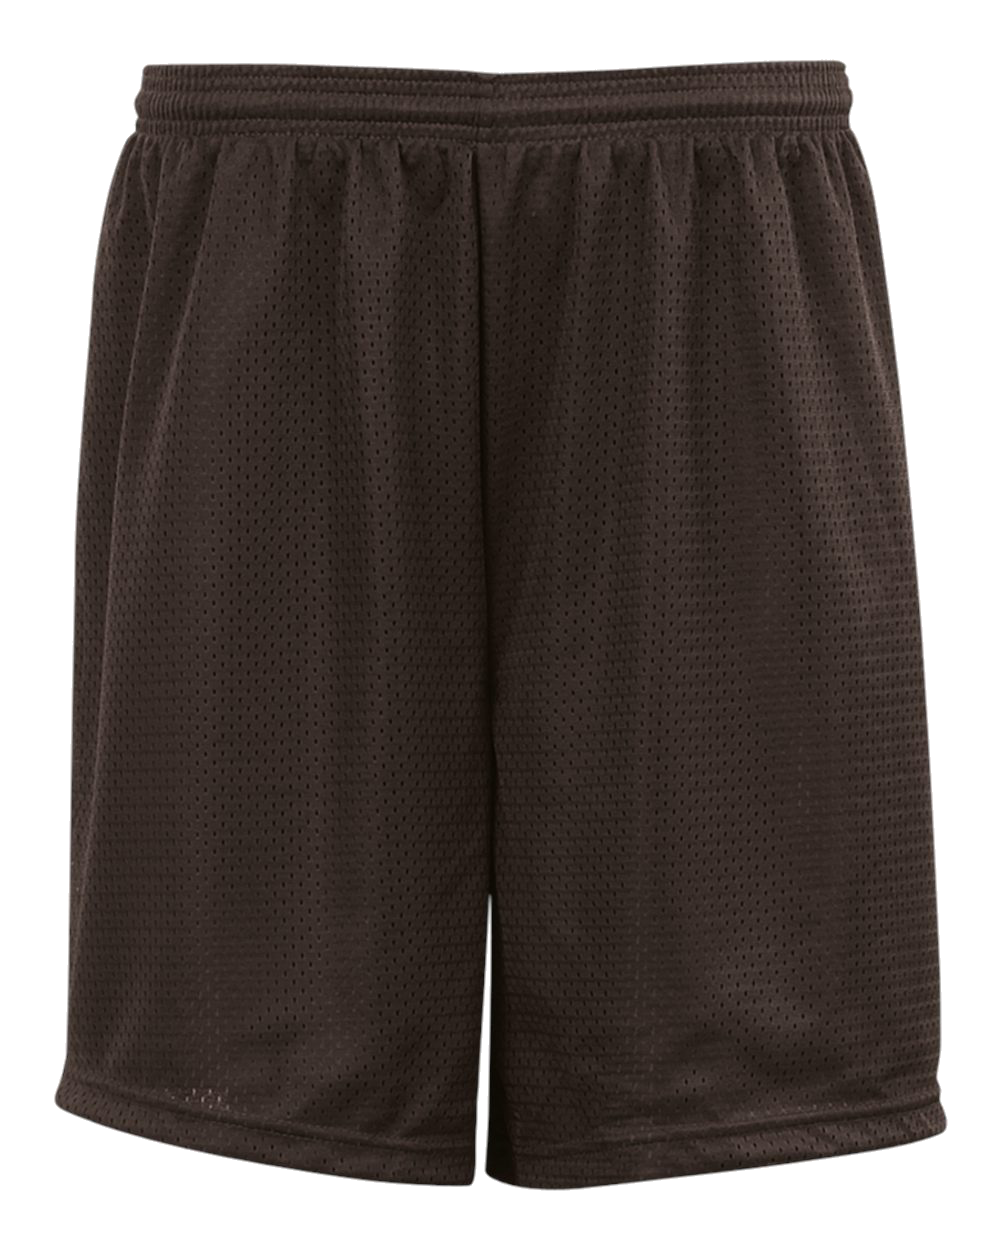 Mesh/Tricot 7 Inch Short - Brown